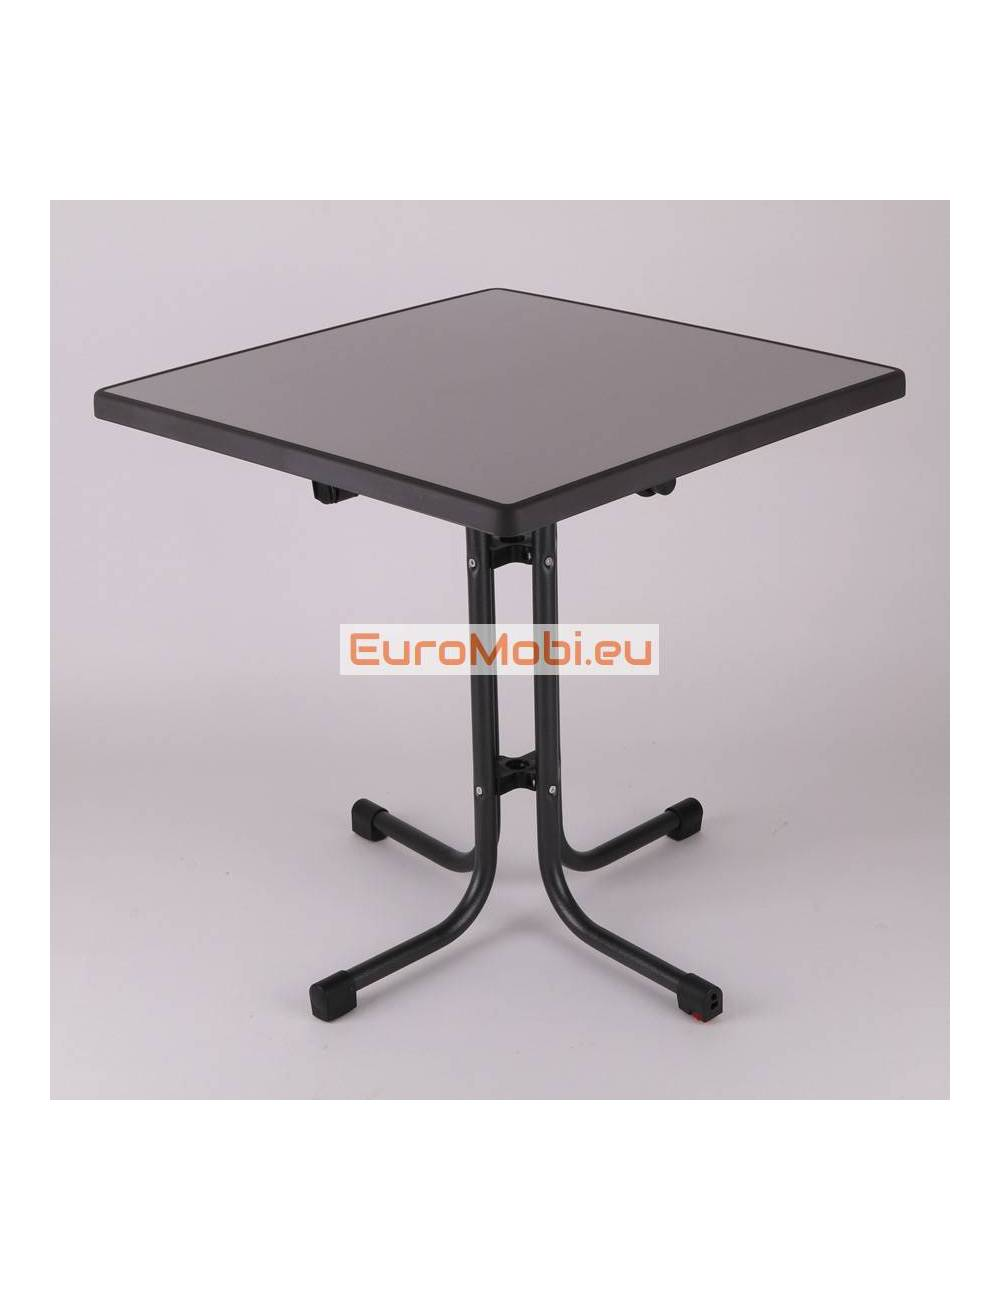 Patio table Tucson Metal brushed 70 x 70 cm